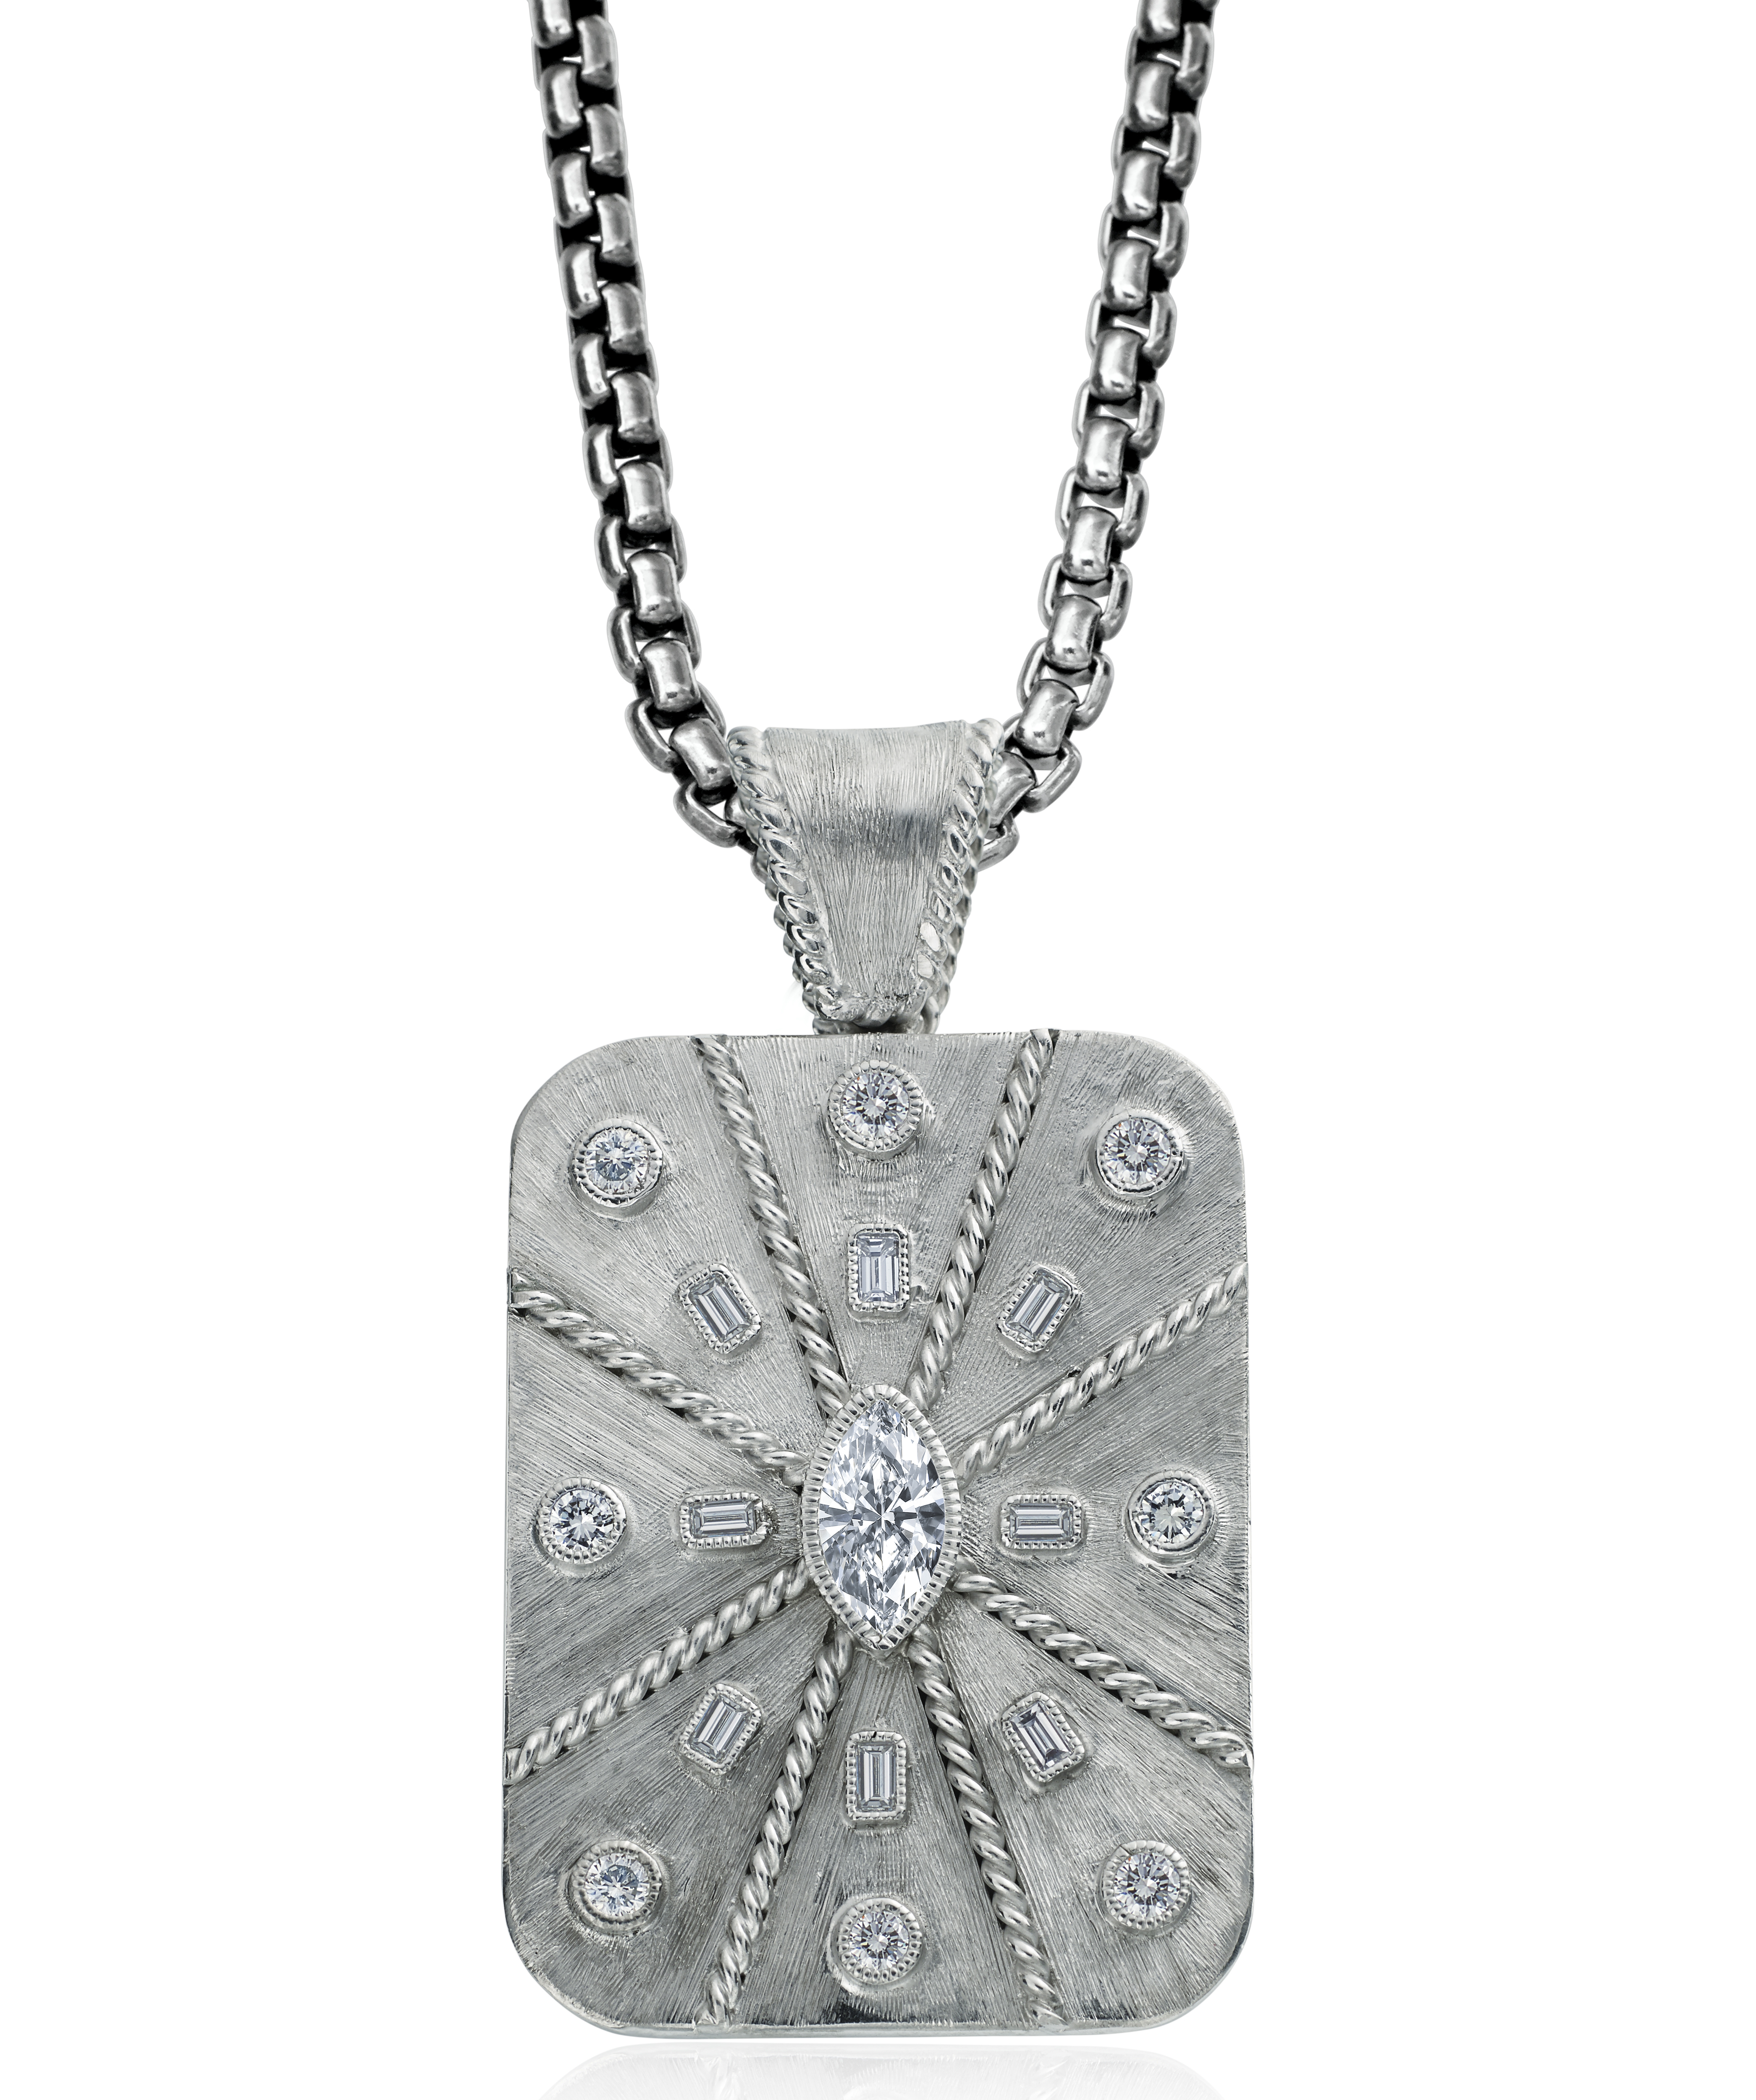 Daniel Bass marquise diamond dog tag | JCK On Your Market